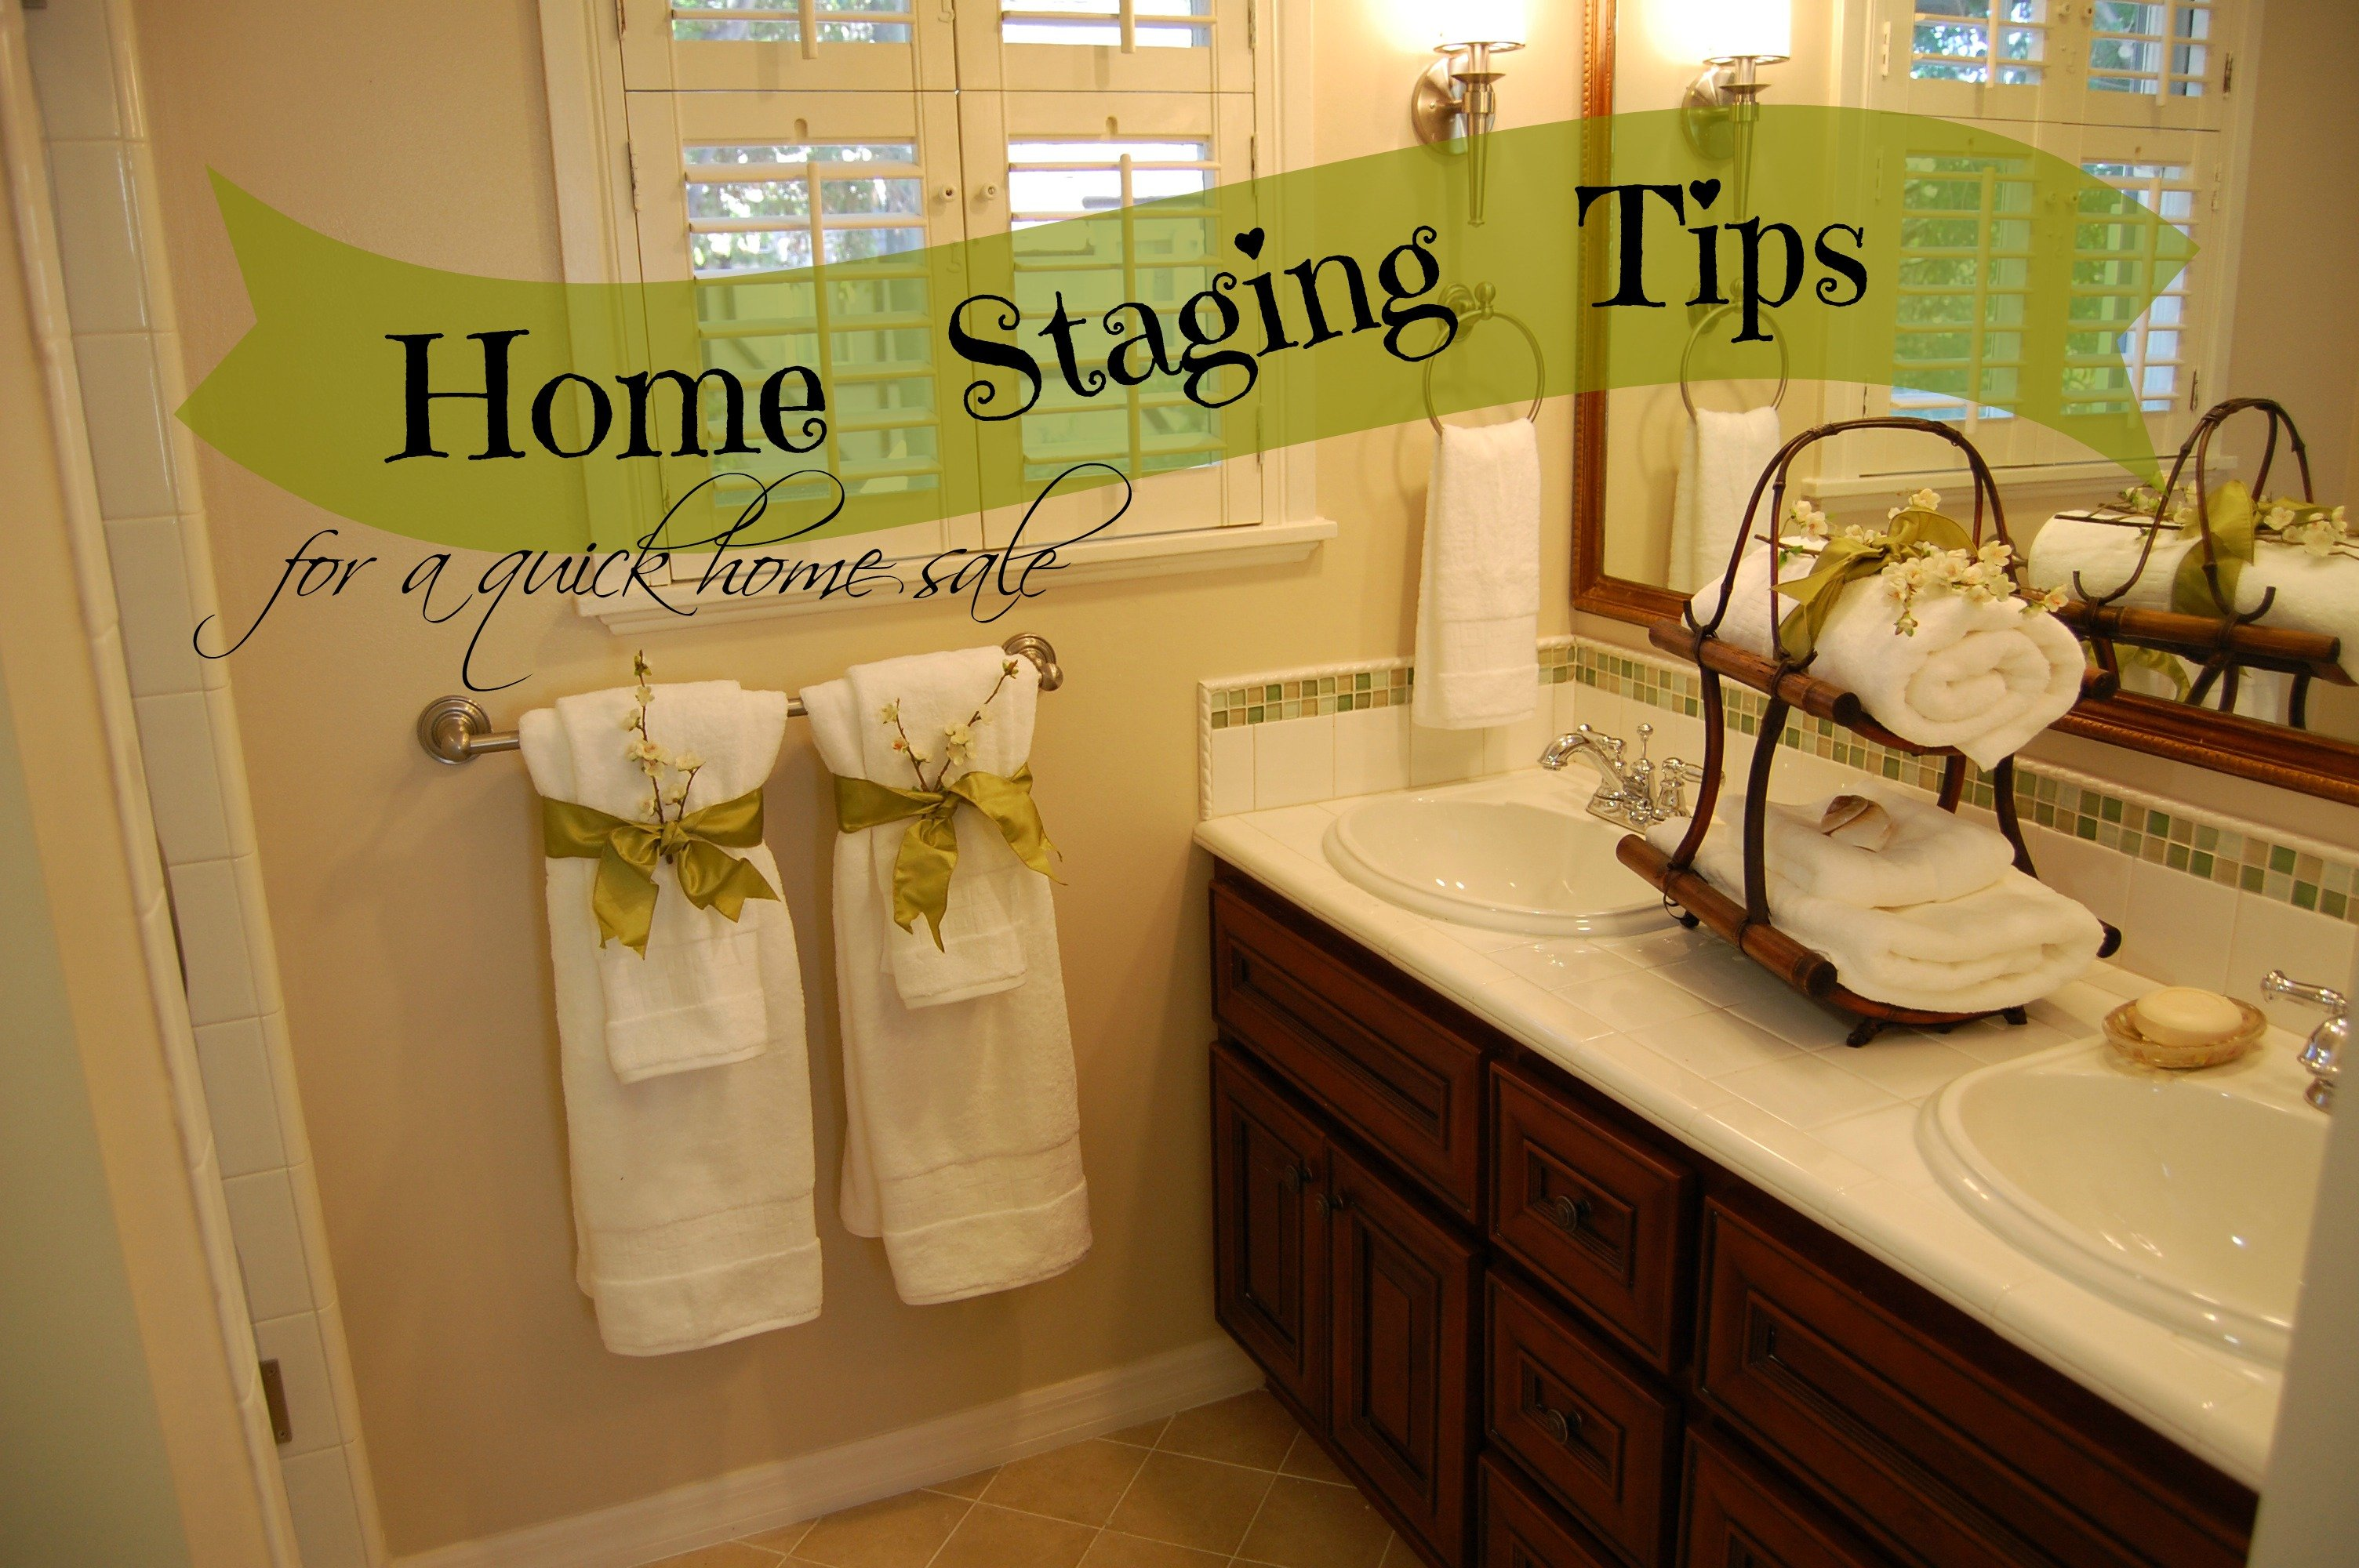 home staging tips for a quick home sale colorado springs On tips for staging a home for sale